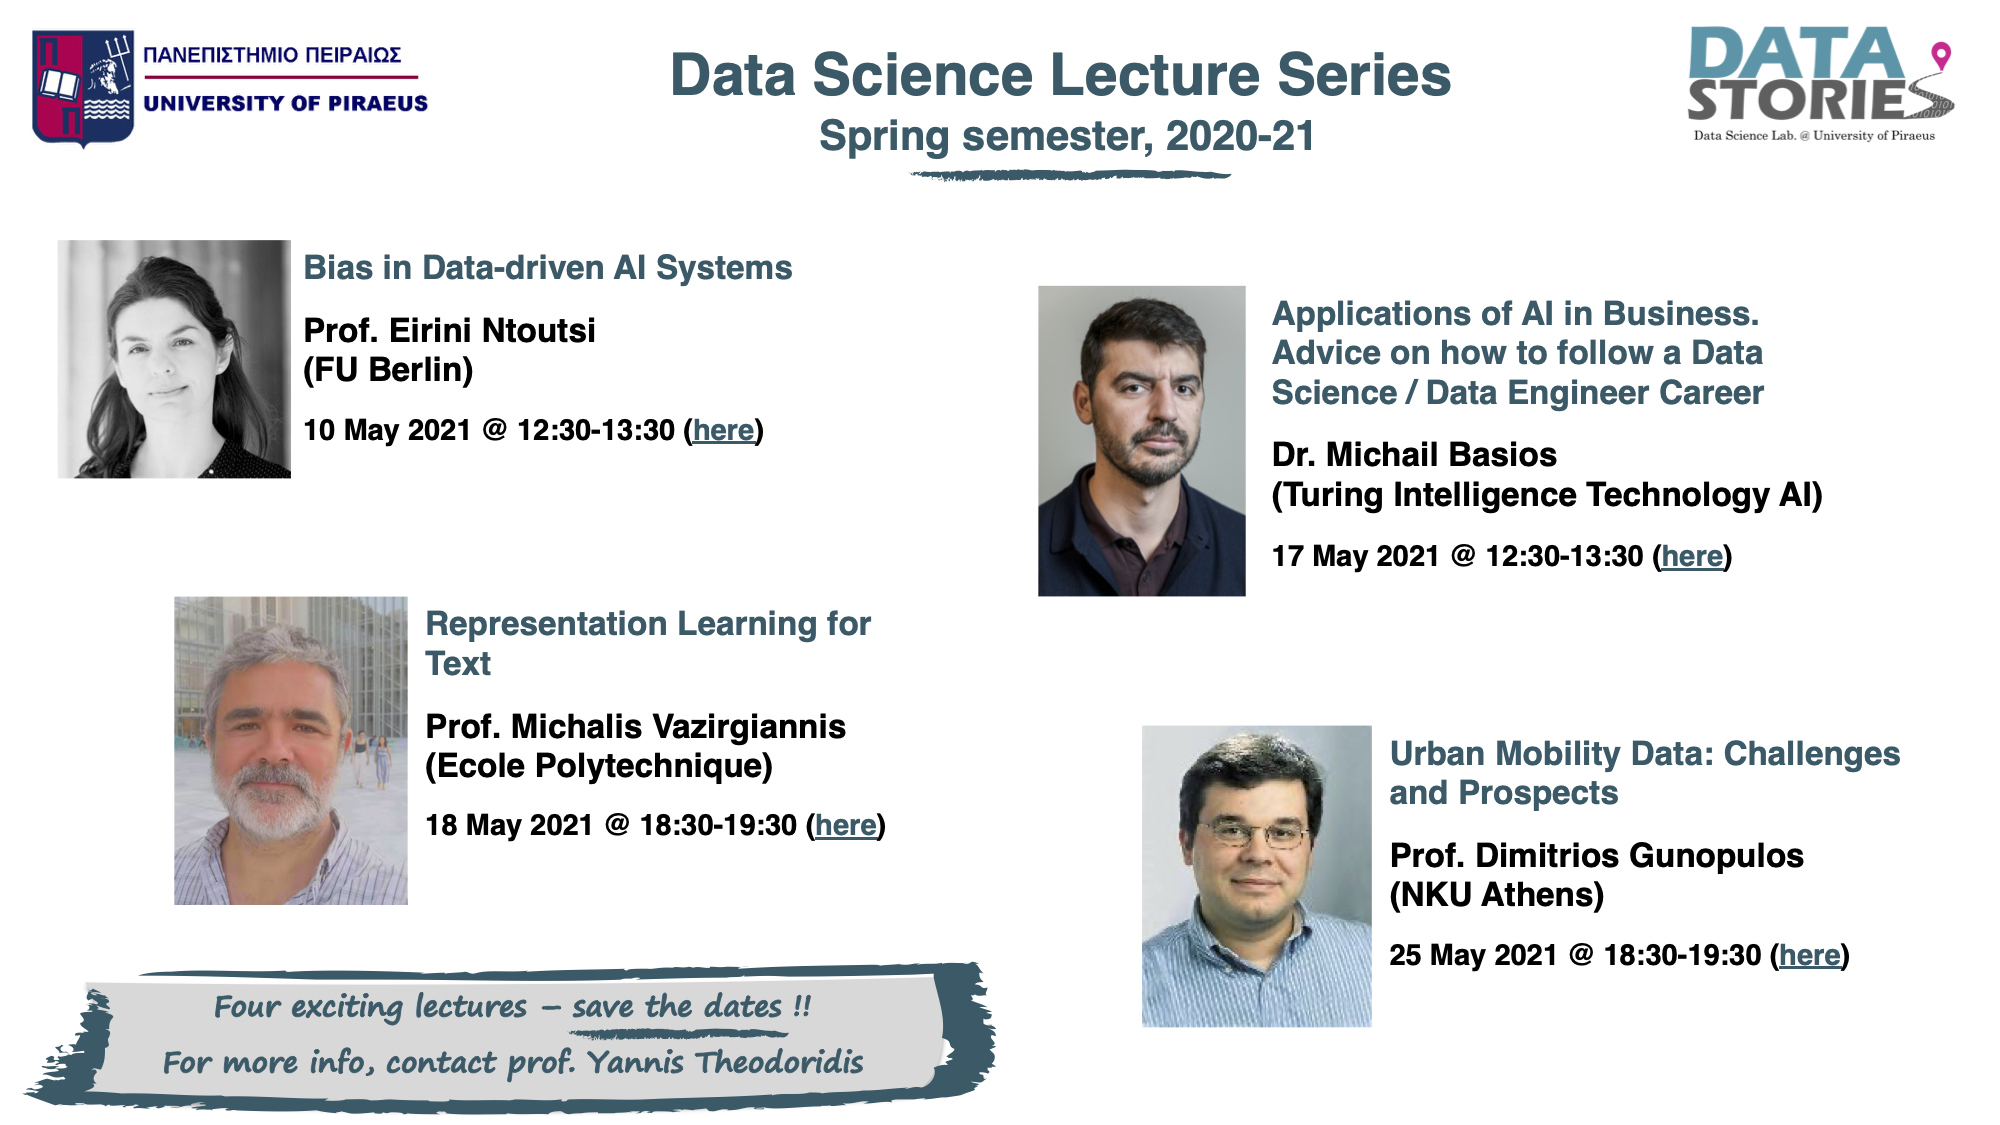 Data Science Lecture Series, Spring semester, 2020-21